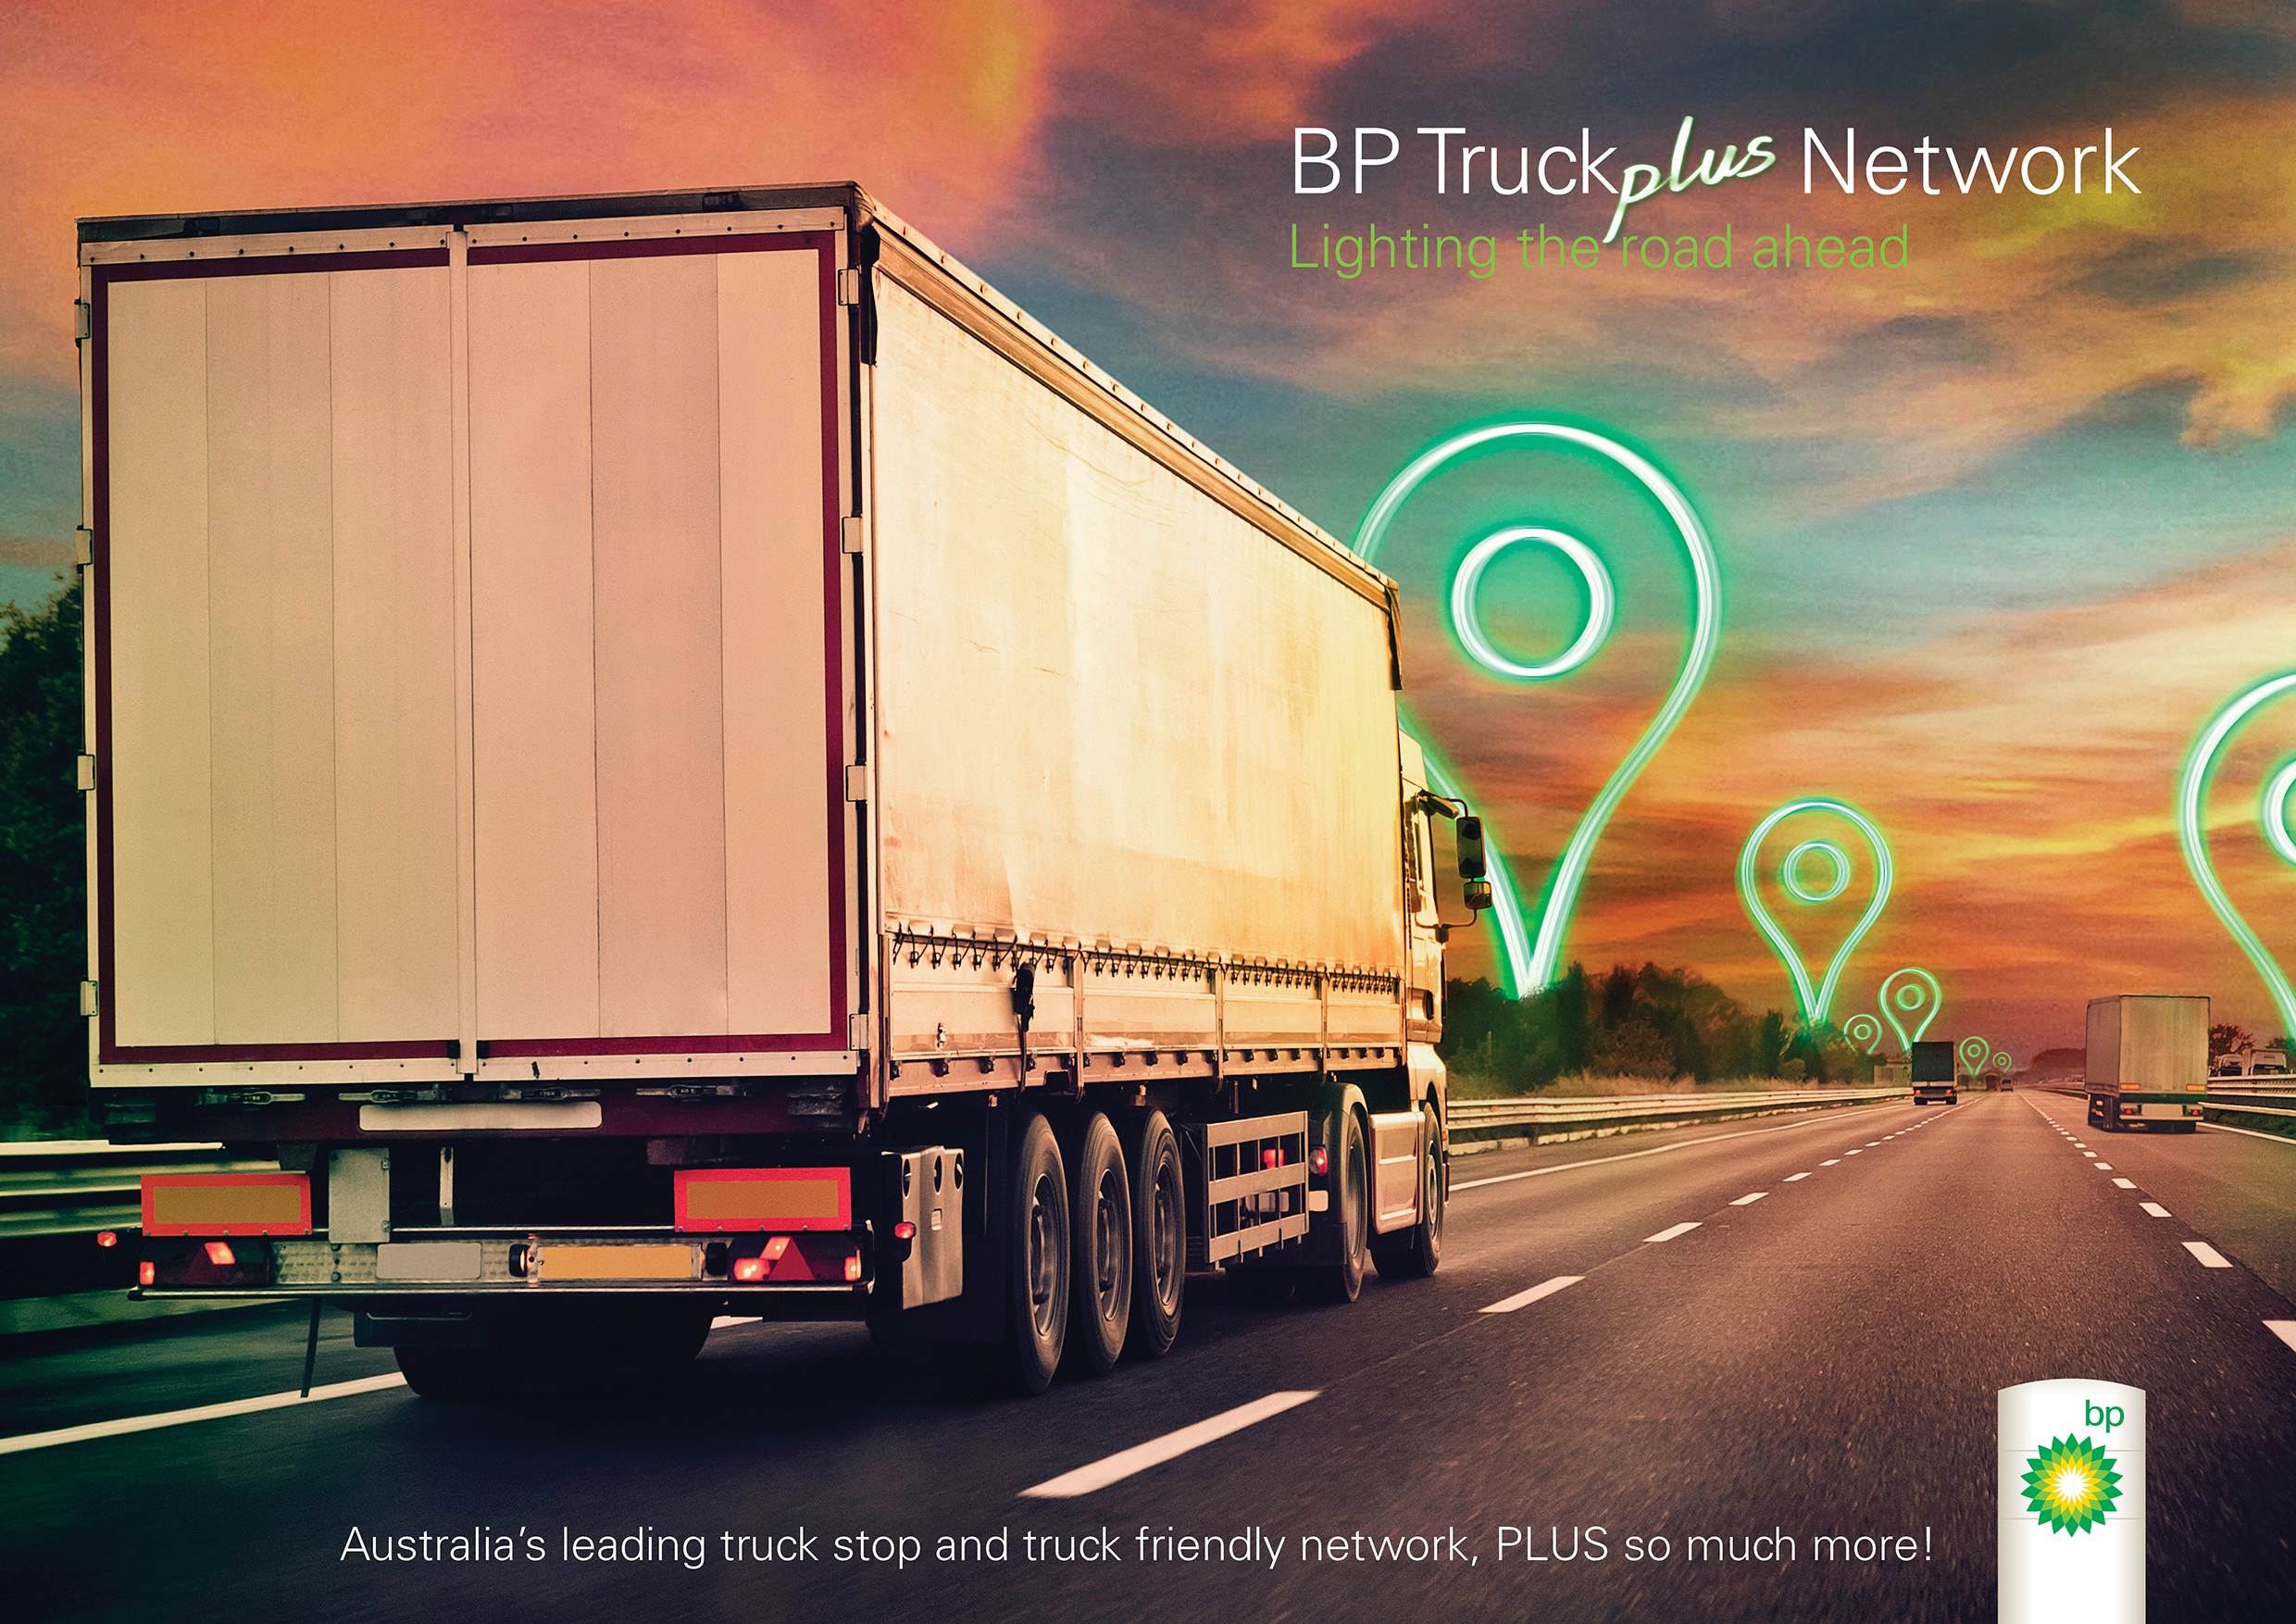 Truck Stop Near Me Inspirational Truck Stops Service Stations Products Services